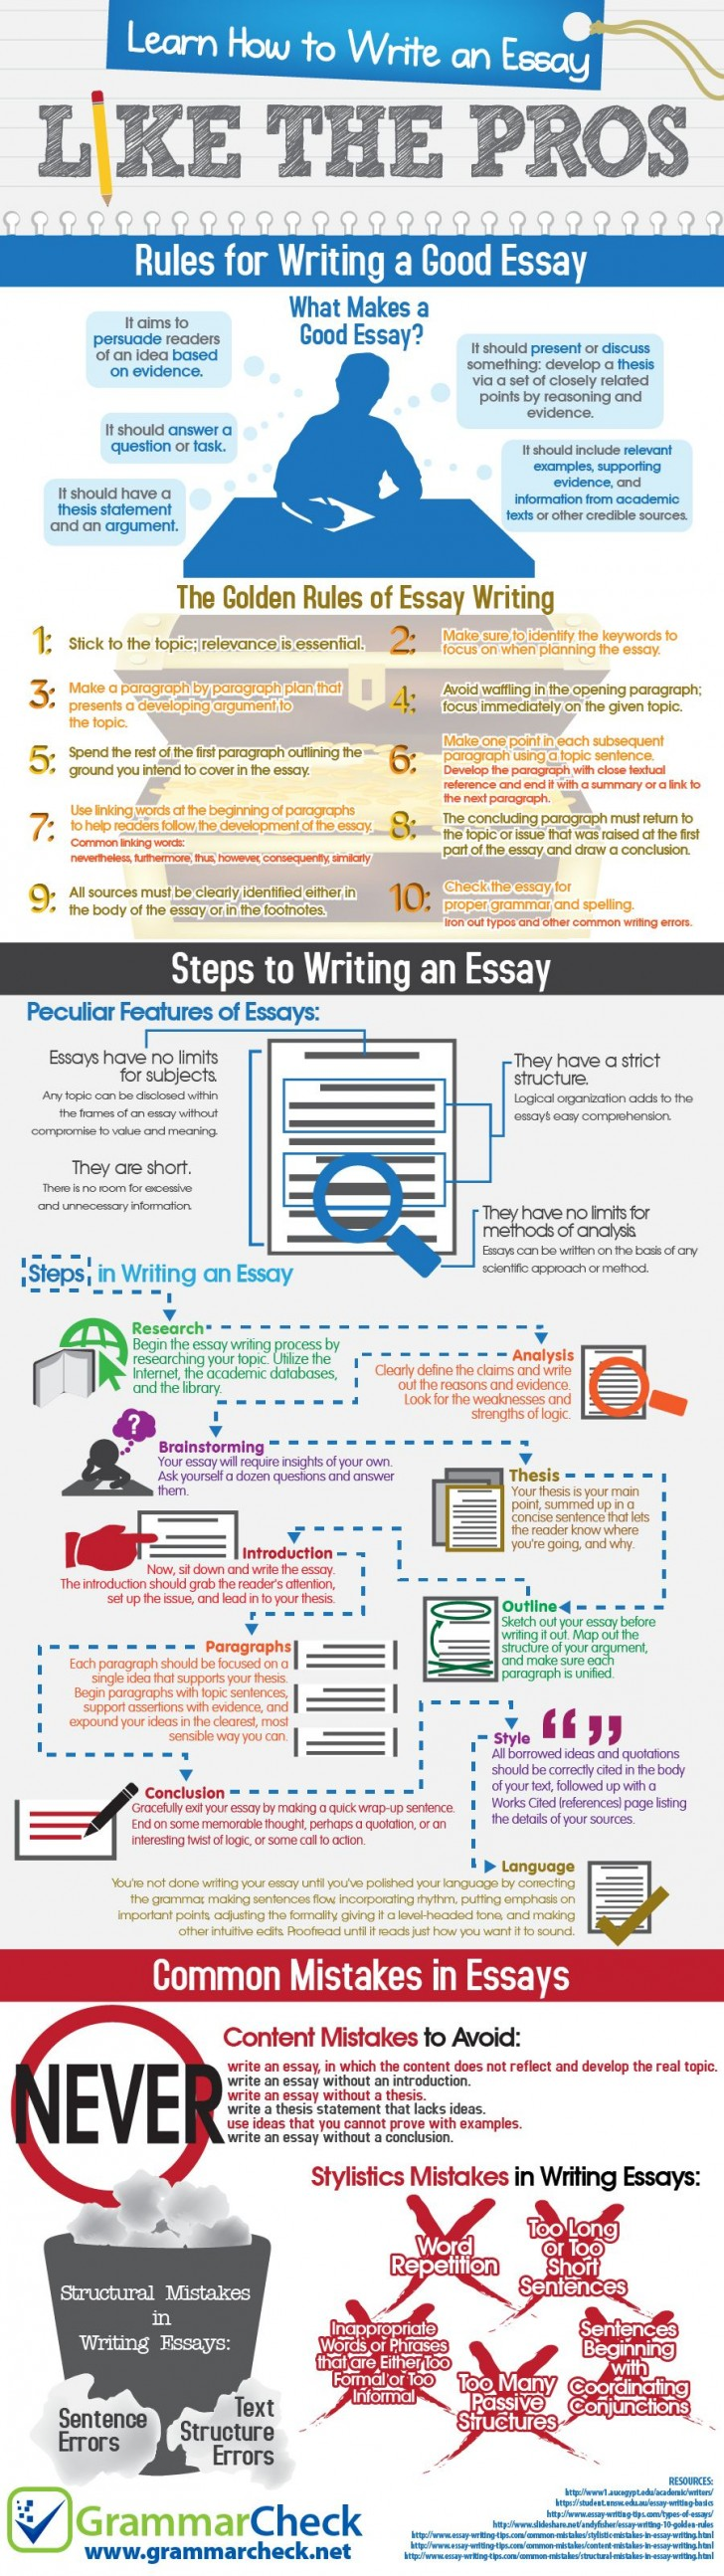 018 Write An Essay For Me Surprising Meaning In Gujarati Free My Online 728